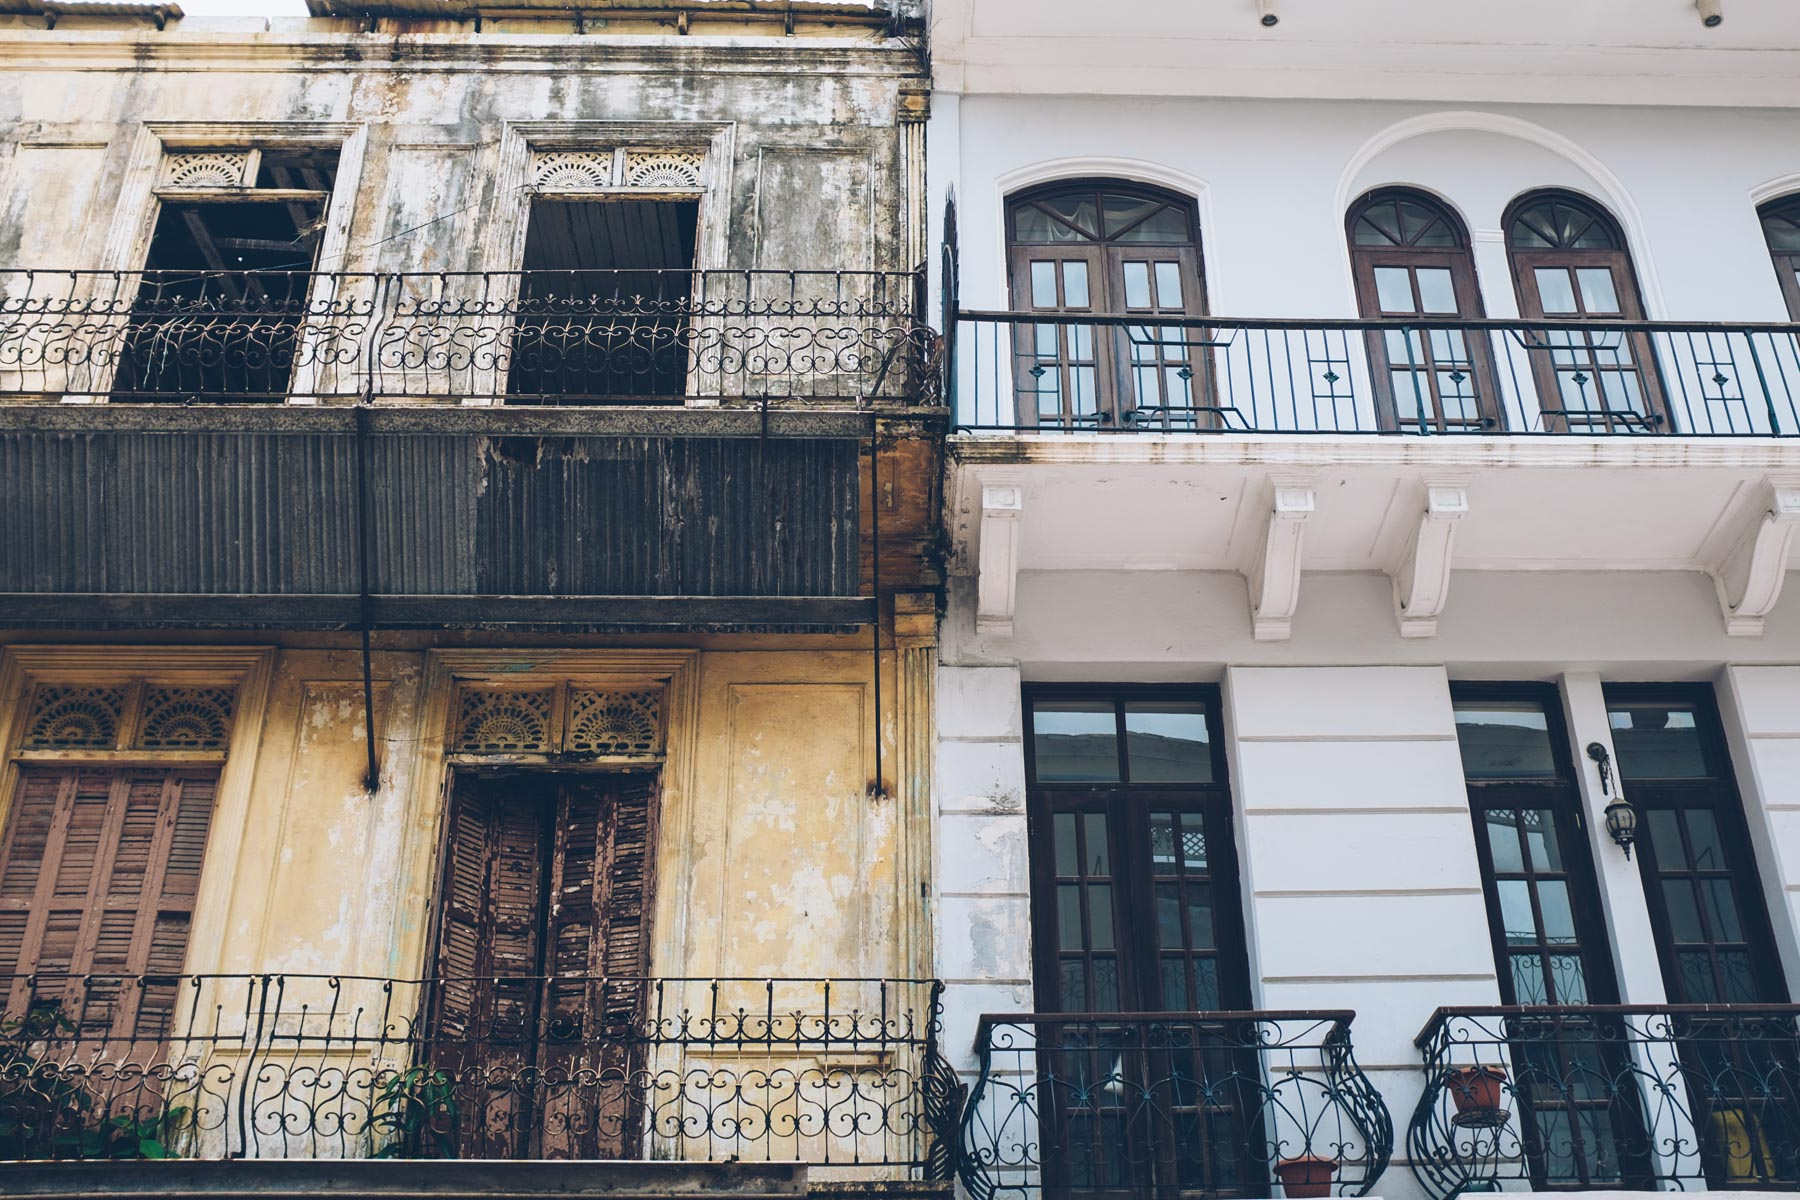 Architectural details in Casco Viejo, Panama City